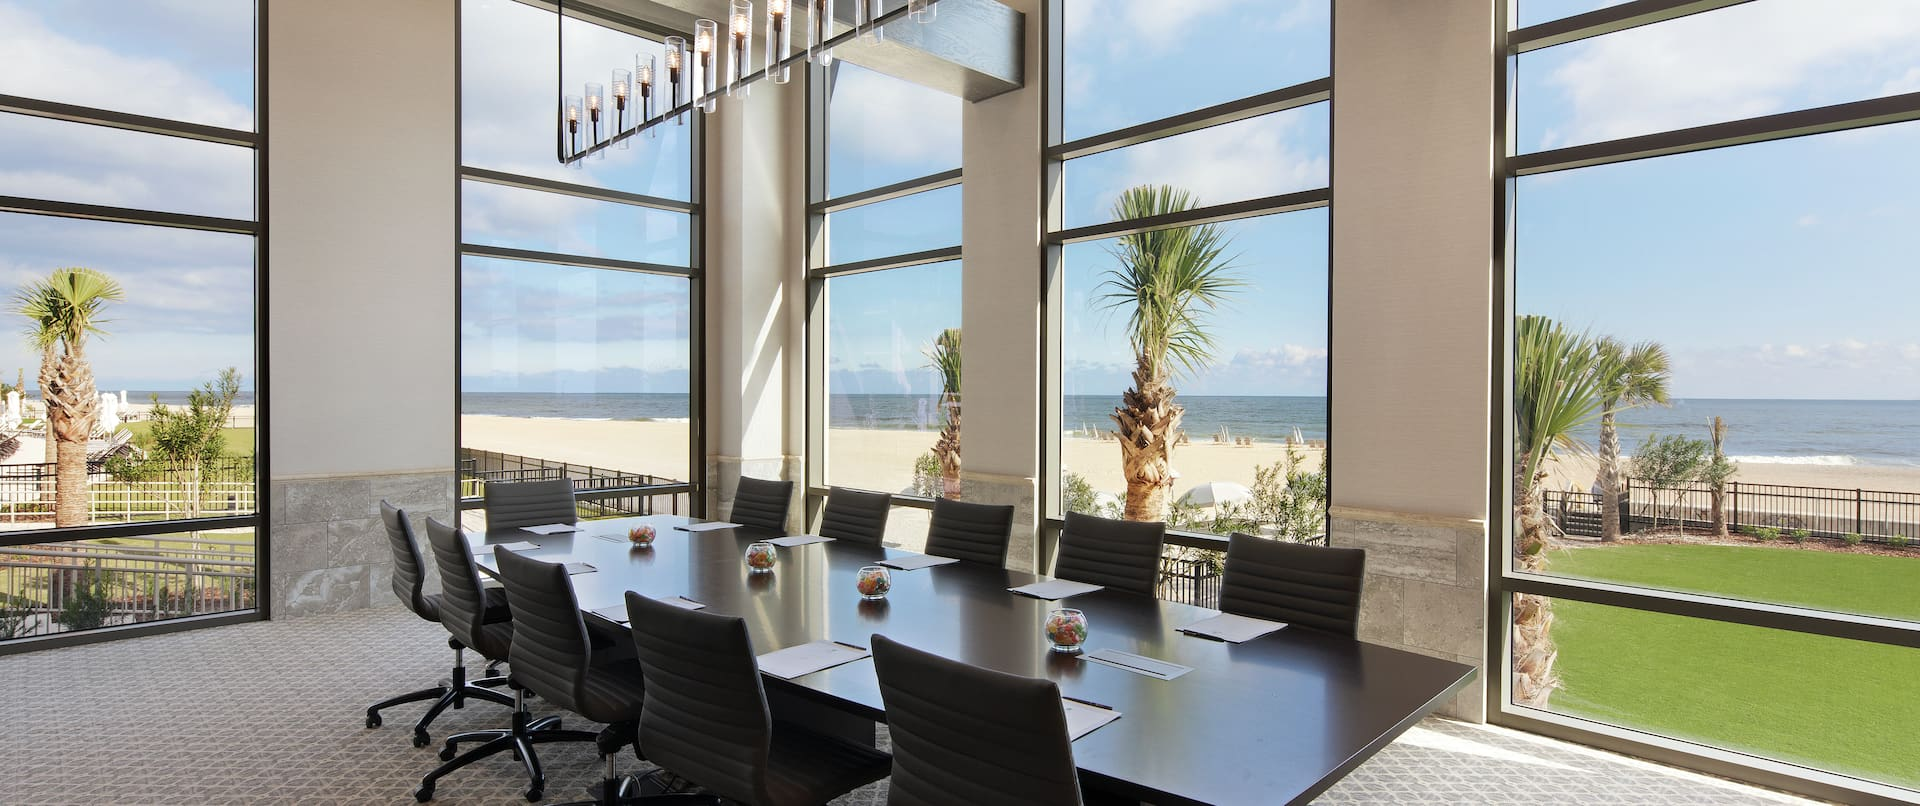 Conference Table and Chairs in Surf Crest Boardroom with Ocean View